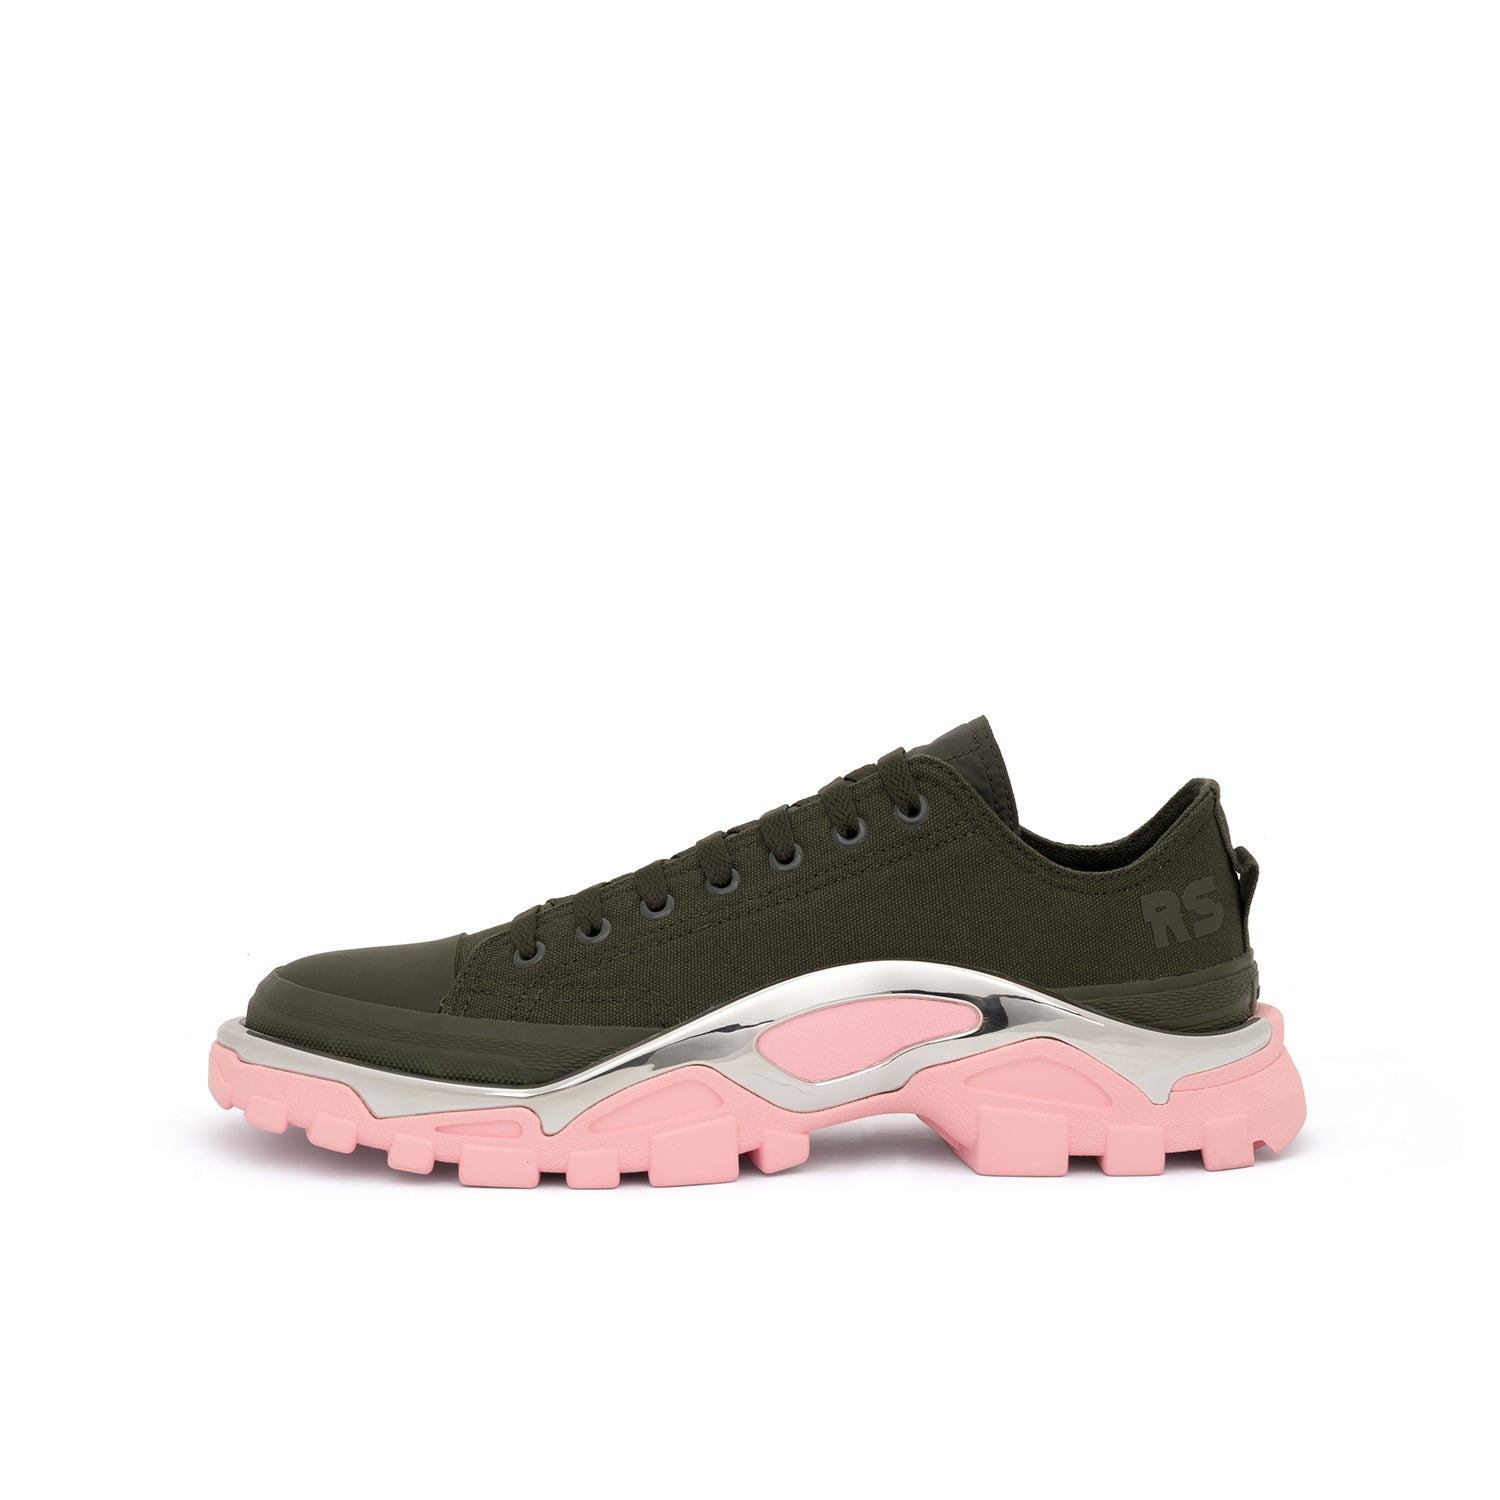 adidas x Raf Simons RS Detroit Runner Night Cargo / Diva